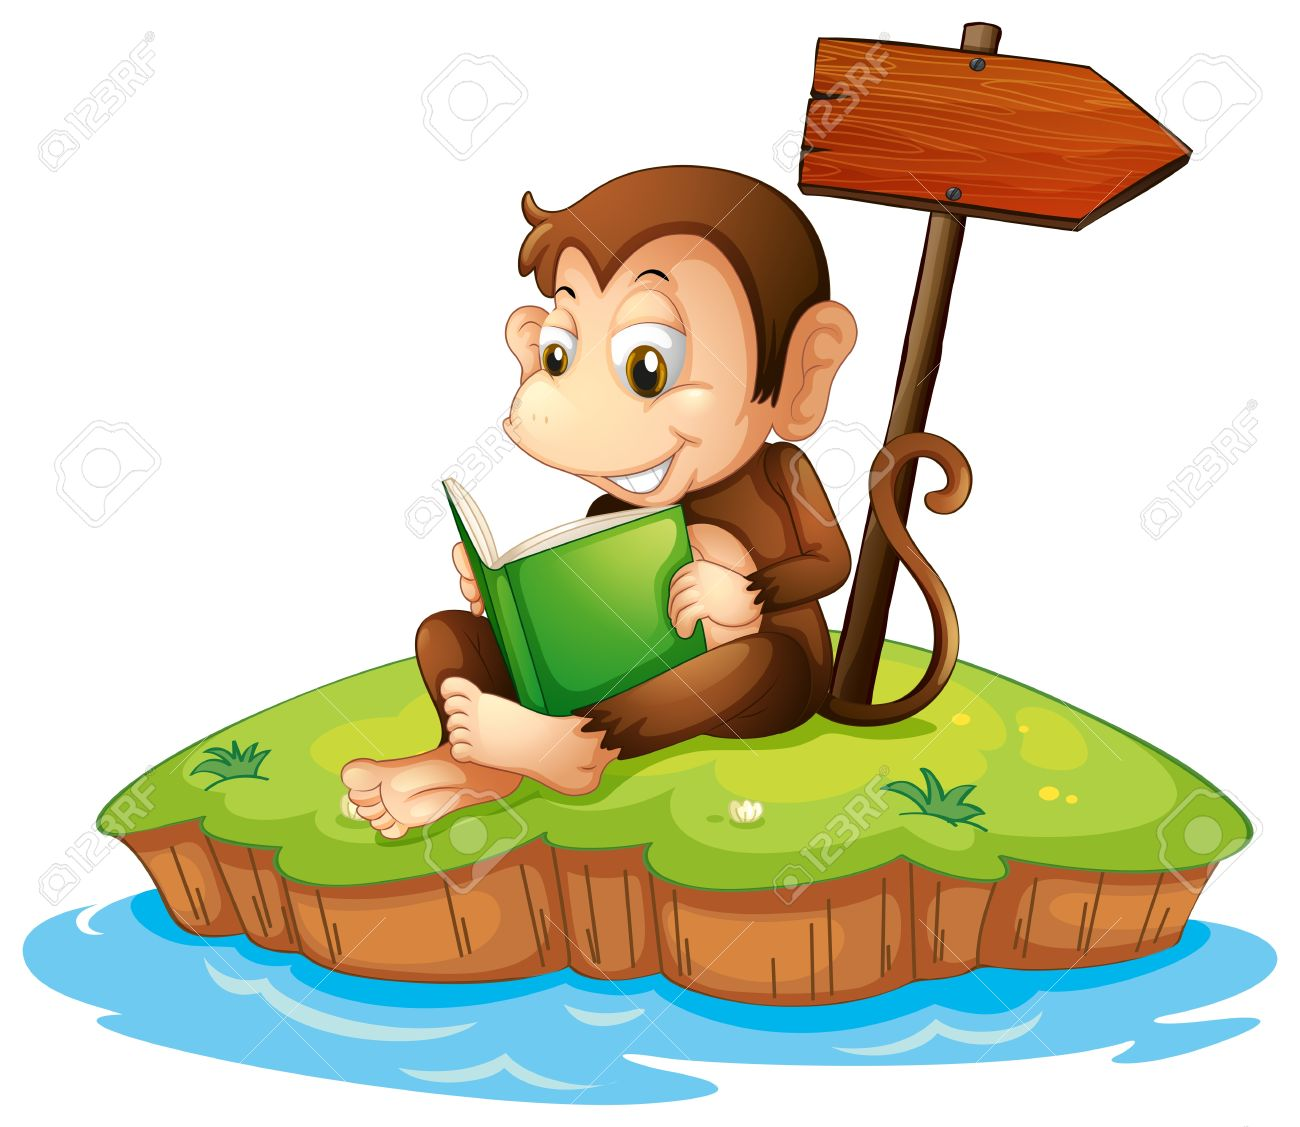 Illustration of a monkey reading a book in an island on a white background Stock Vector - 20517758